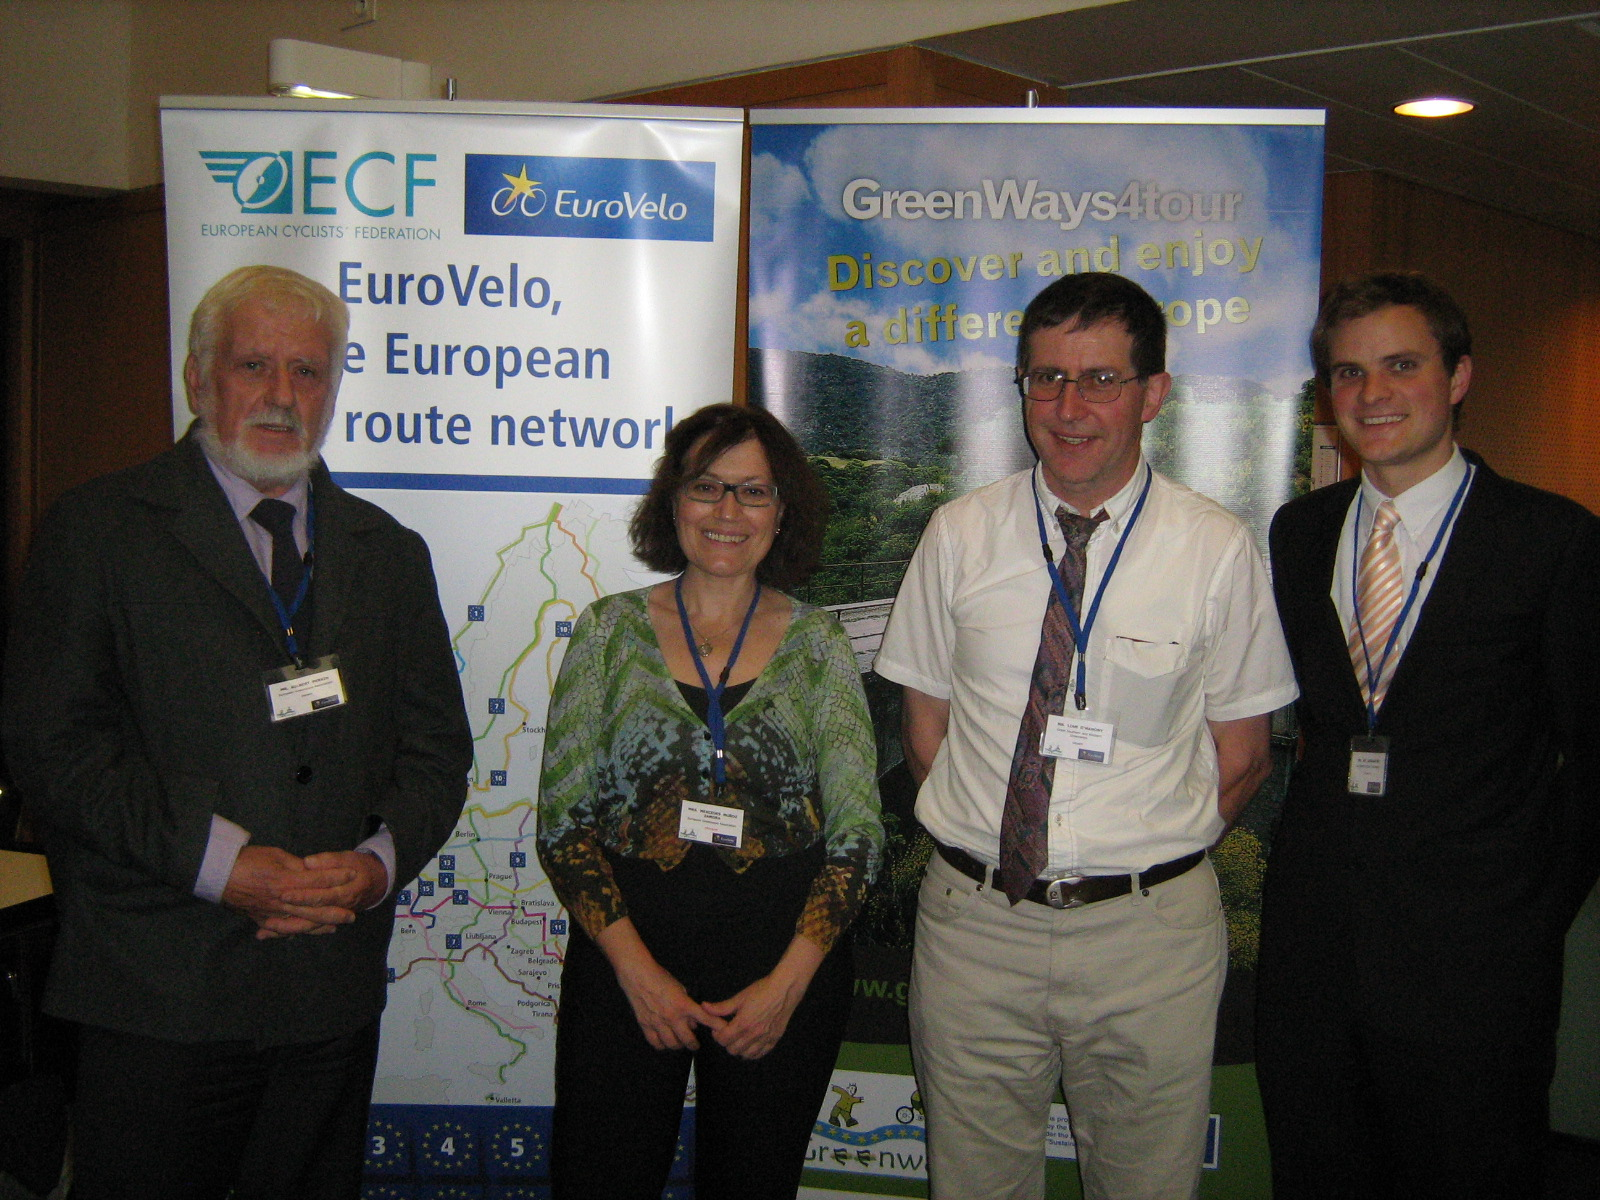 PHOTO CAPTION: At the Joint Conference of the European Cycling Federation( ECF) and the European Greenways Association(EGWA) held in the city of Nantes, France on Wednesday Sept. 26th 2012 were L.to R. M.Gilbert Perrin (Belgium), President, EGWA; Ms.Mercedes Munoz (Spain), Director, EGWA; Mr.Liam O'Mahony (Ireland), Cathaoirleach, Great Southern Trail and Mr. Ed. Lancaster (England), Regional Policy & Cycling Tourism Officer, ECF